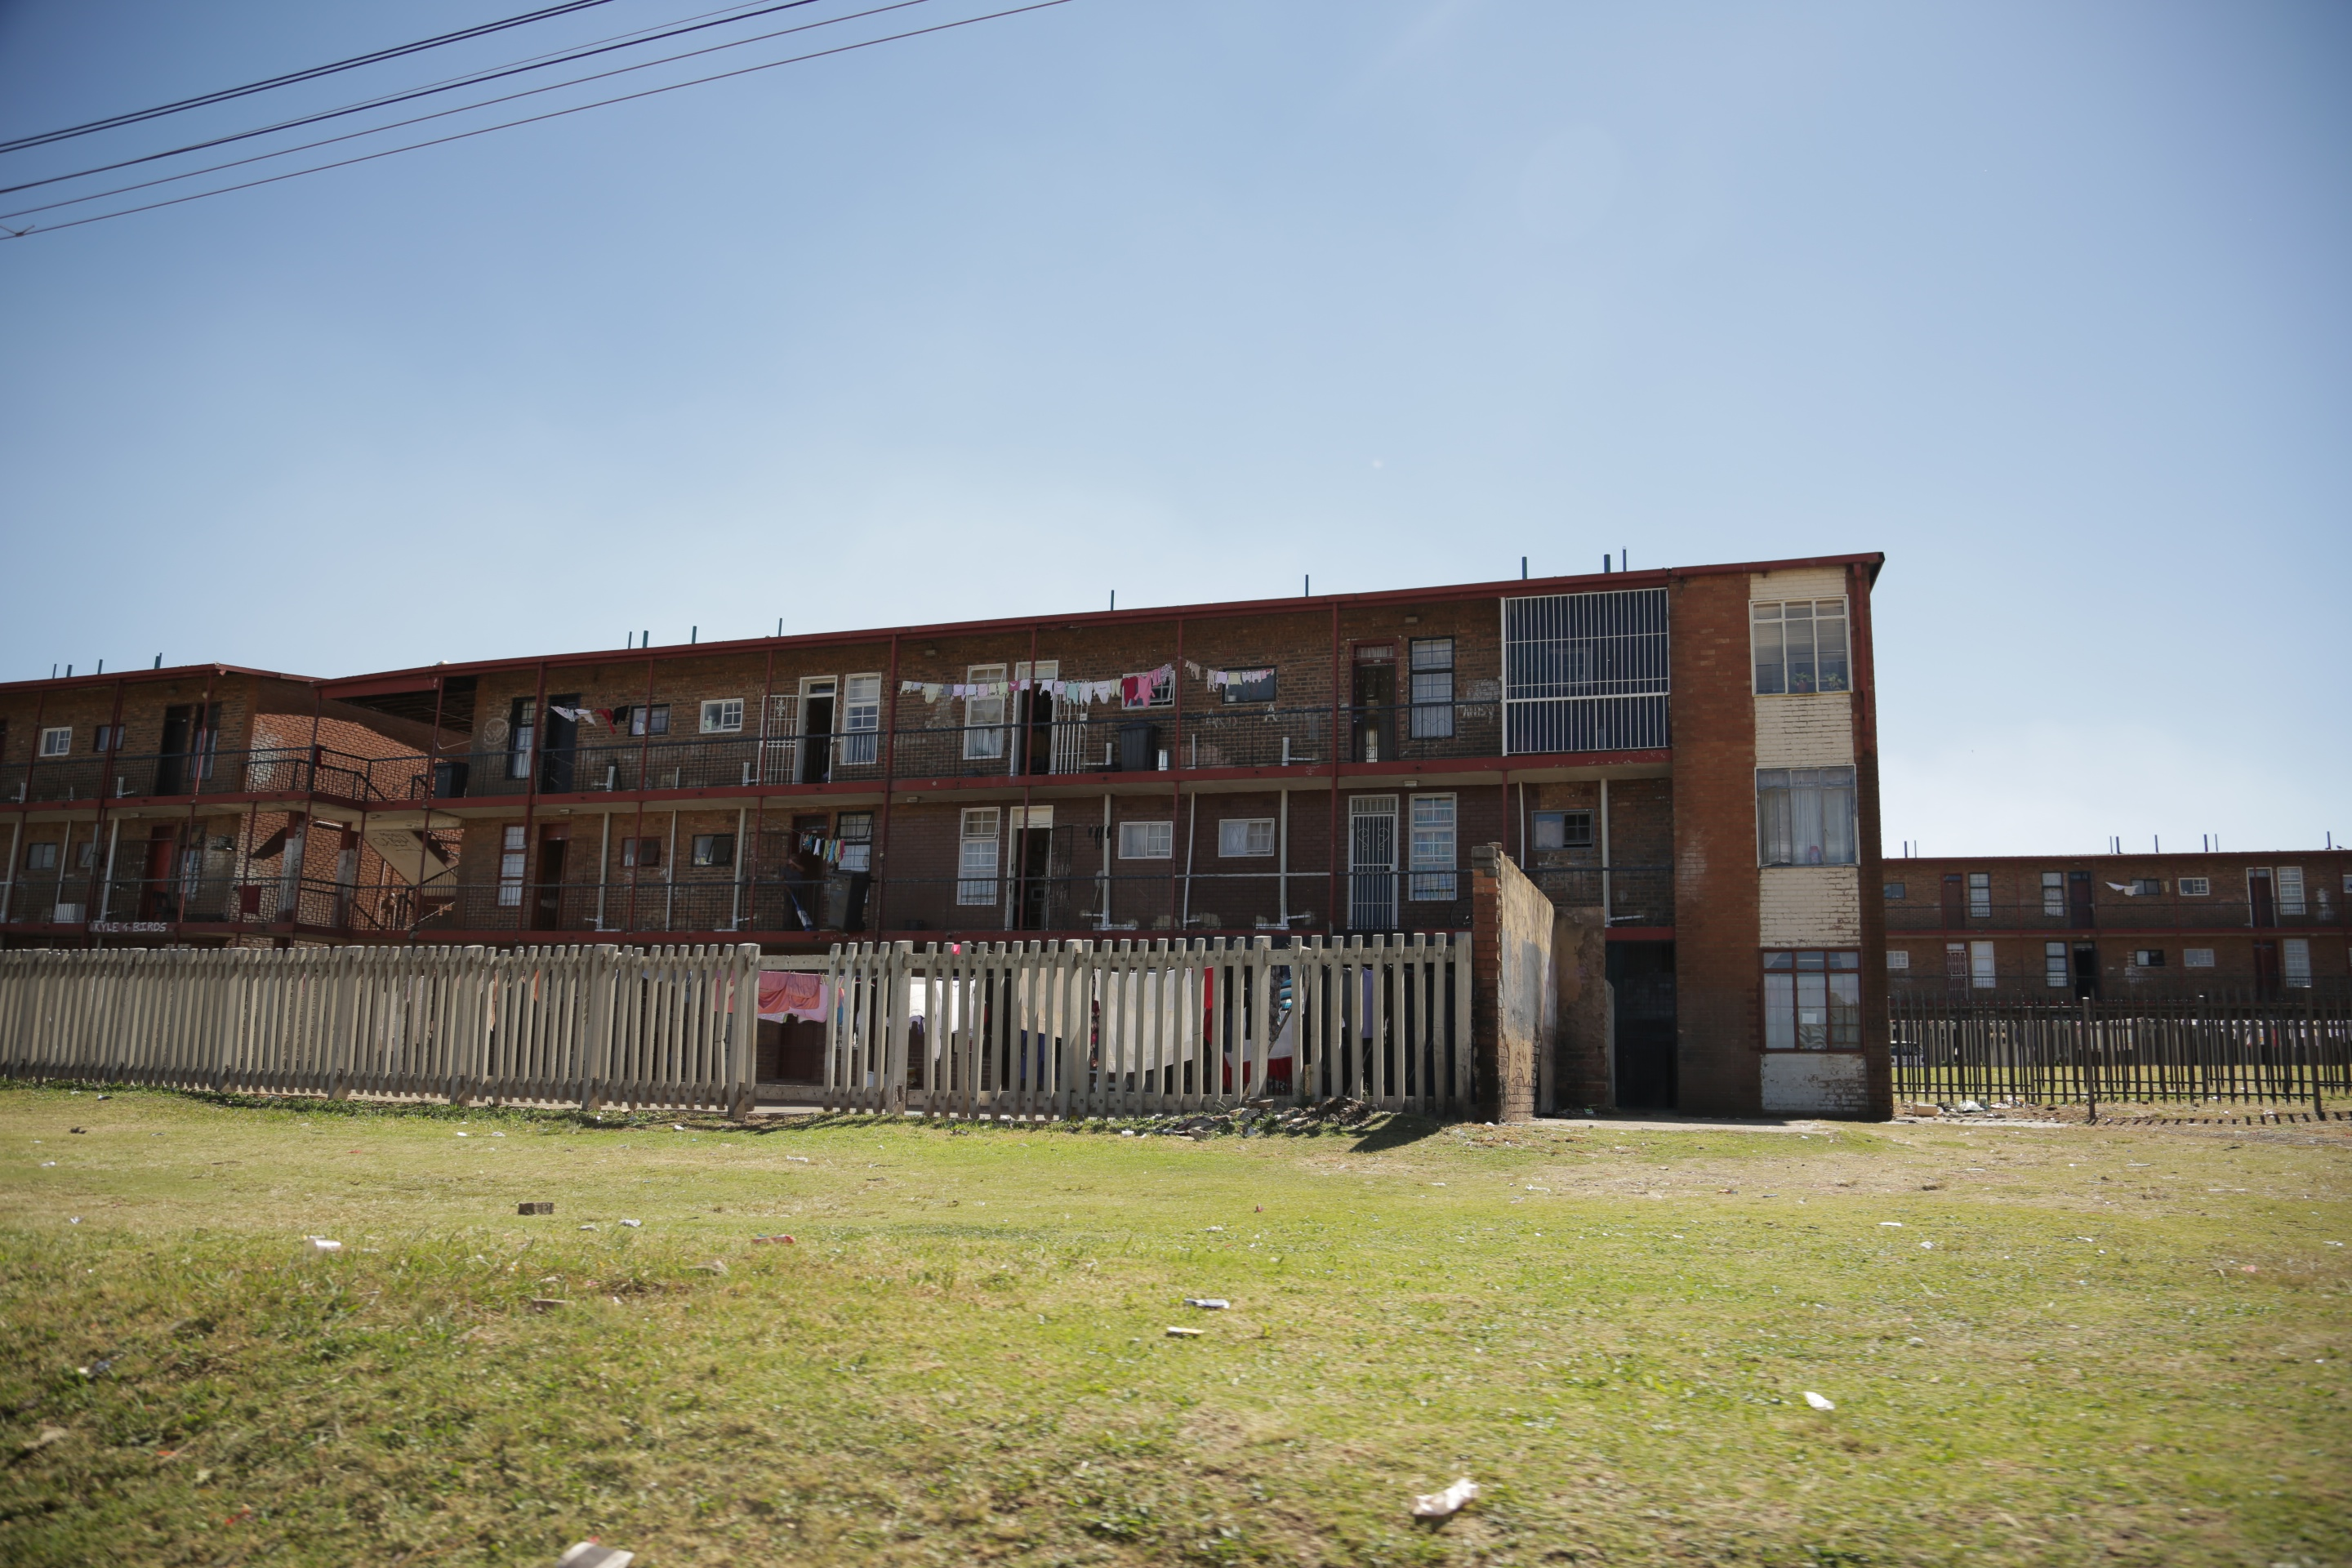 A housing development in El Dorado Park, an area of Soweto where several of The Commandos live with their parents.